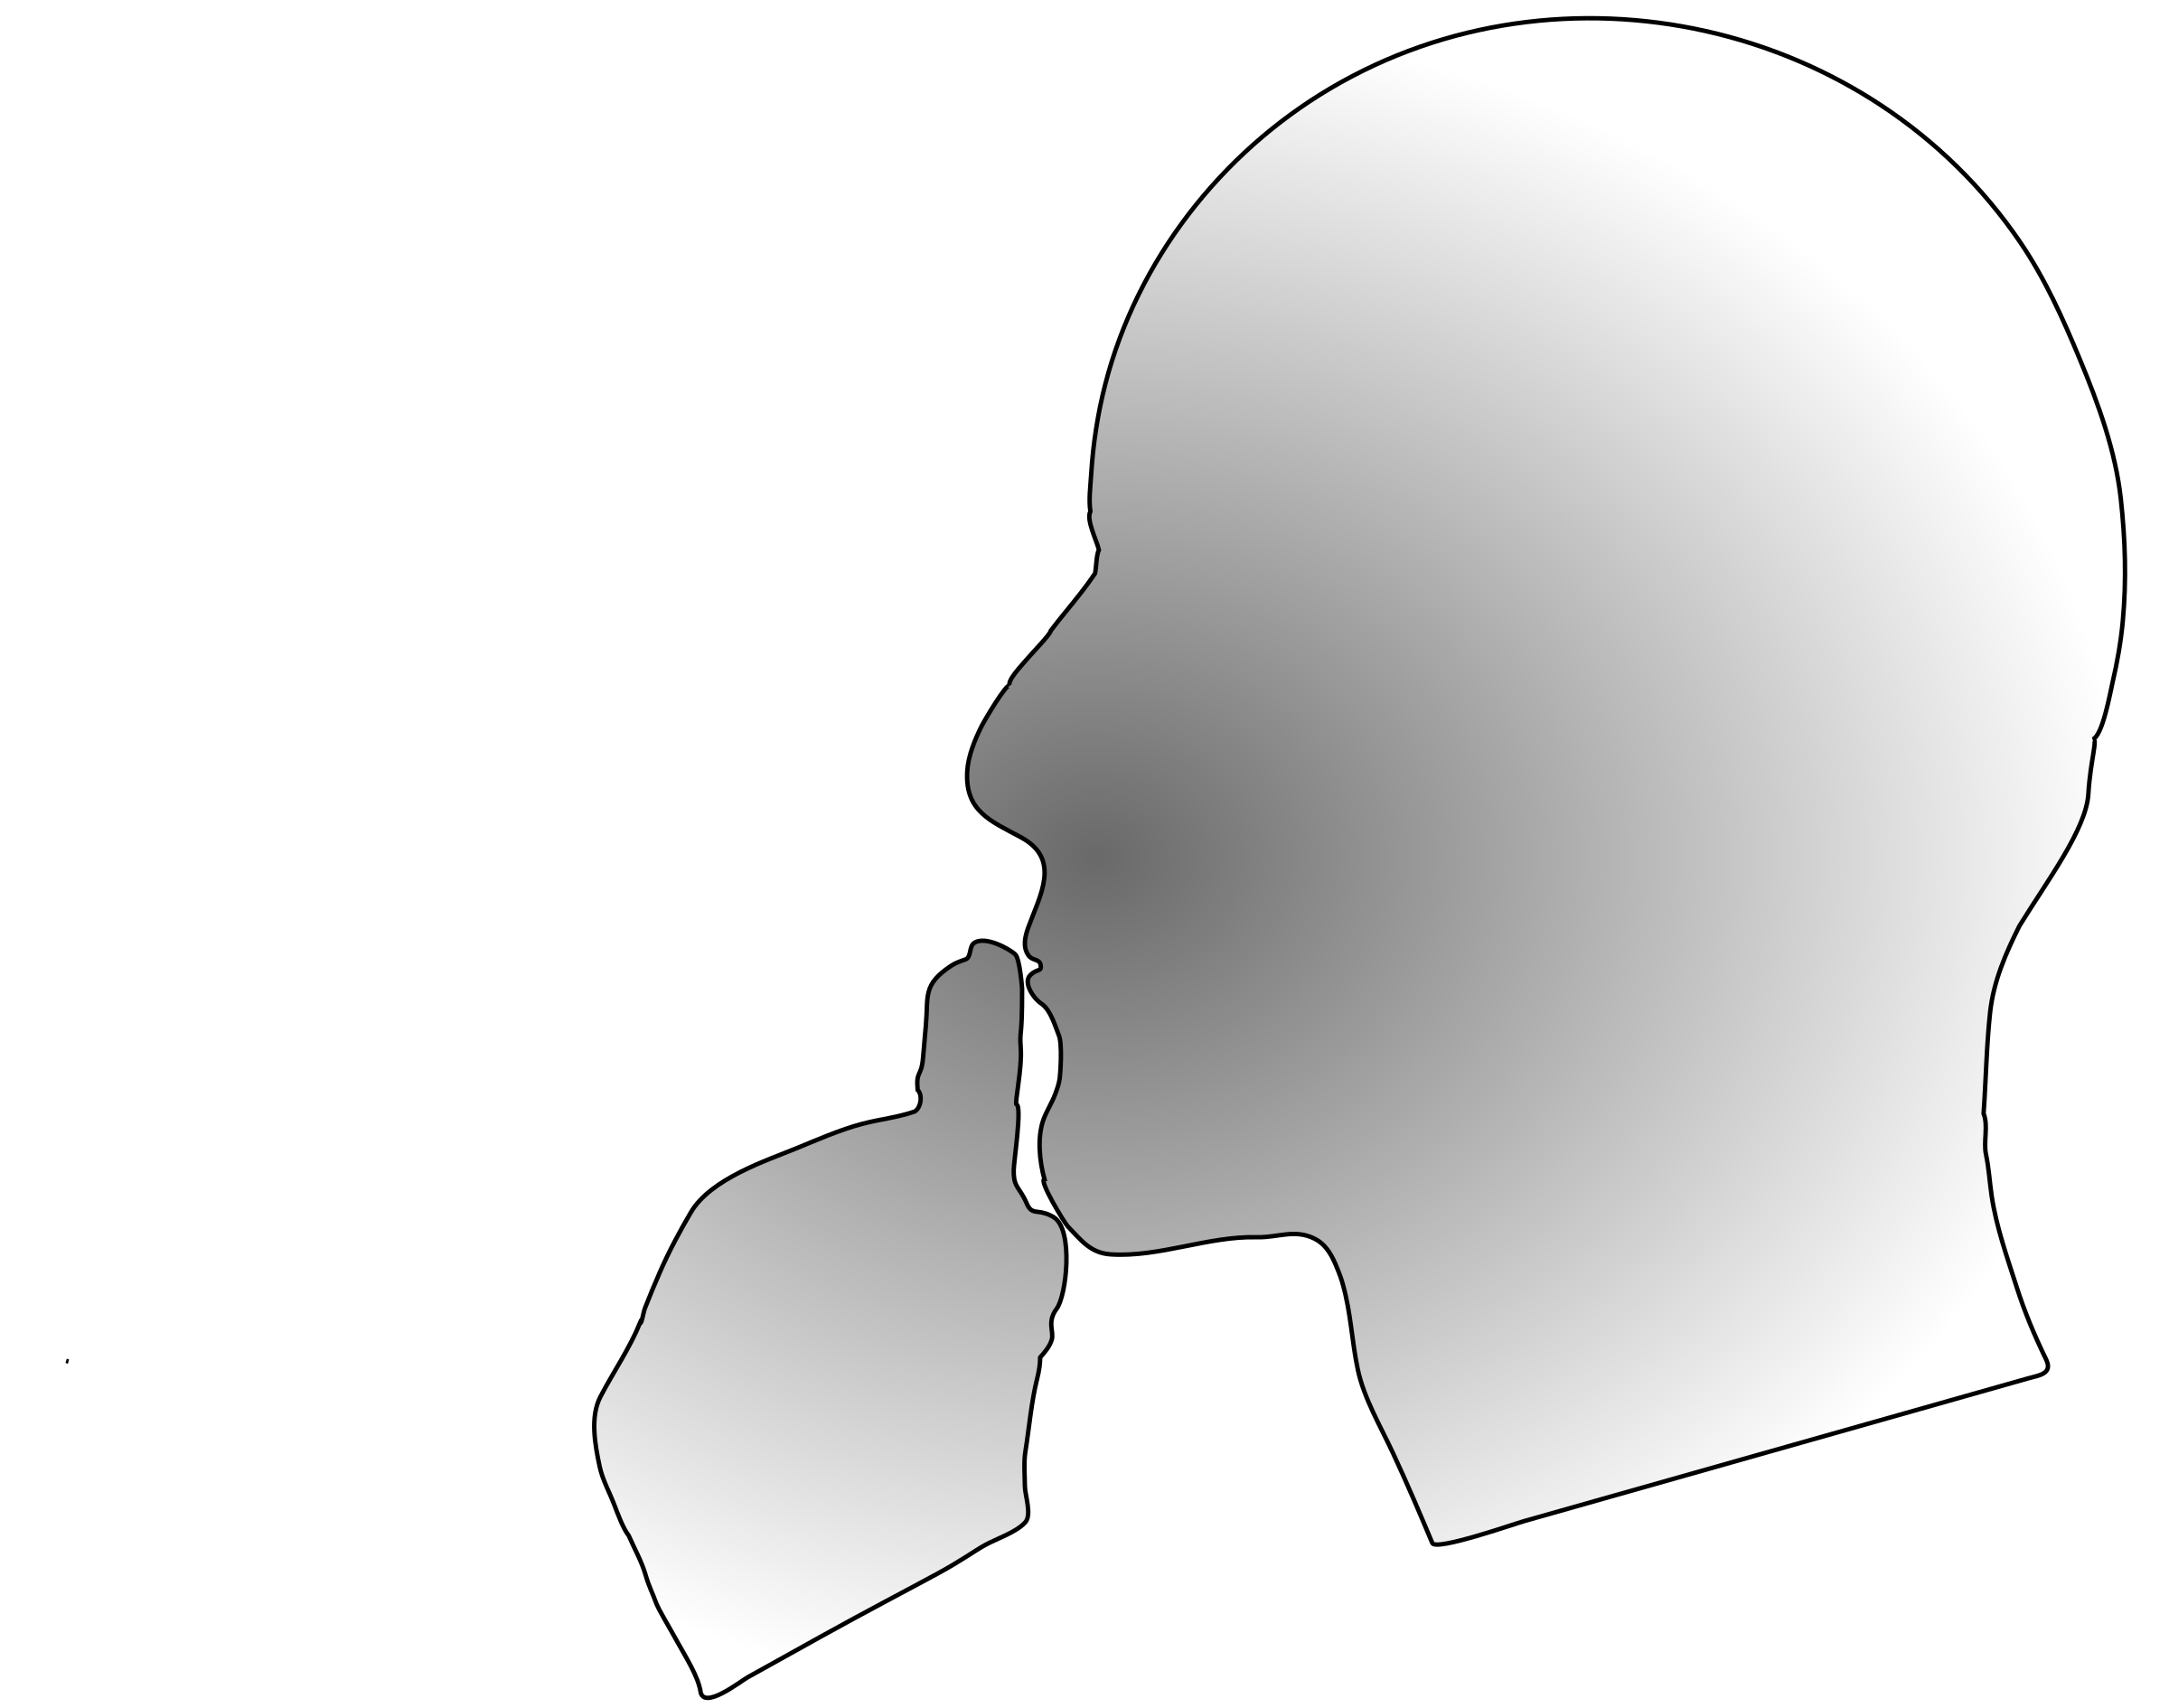 Deep thinking or reflecting. Thoughts clipart reflection